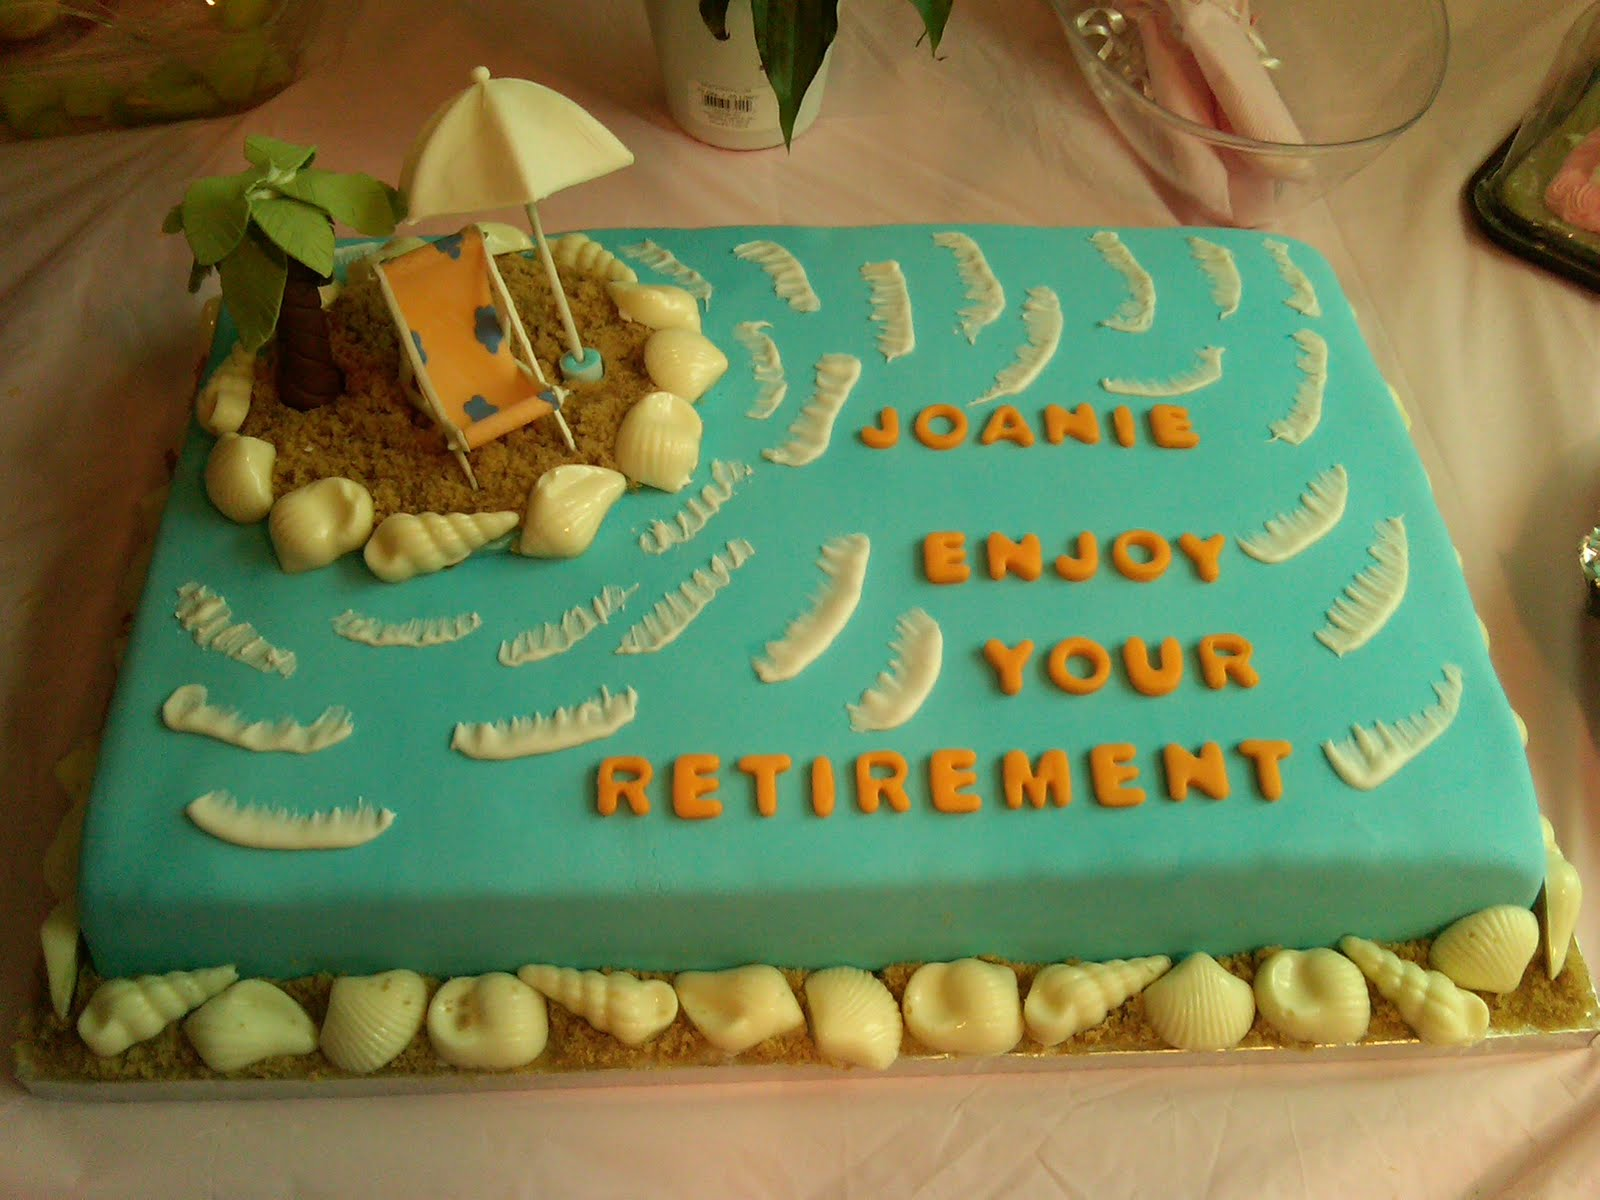 Remarkable Retirement Cake Decorations 1600 x 1200 · 171 kB · jpeg